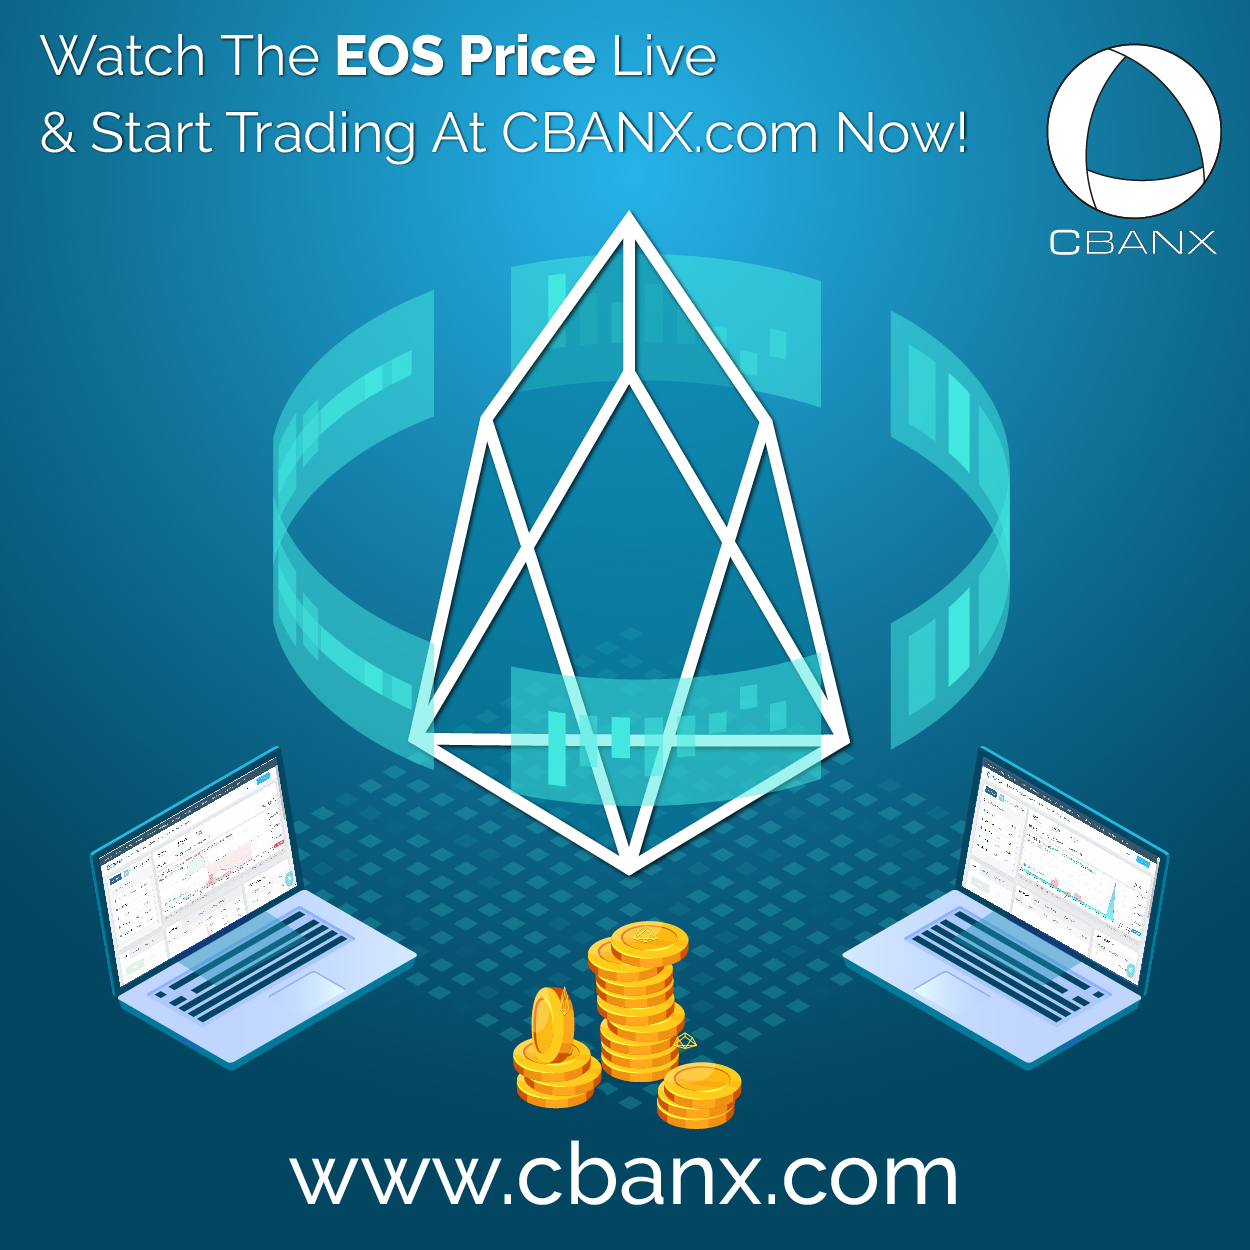 Watch The EOS Price Live & Start Trading At CBANX.com Now!